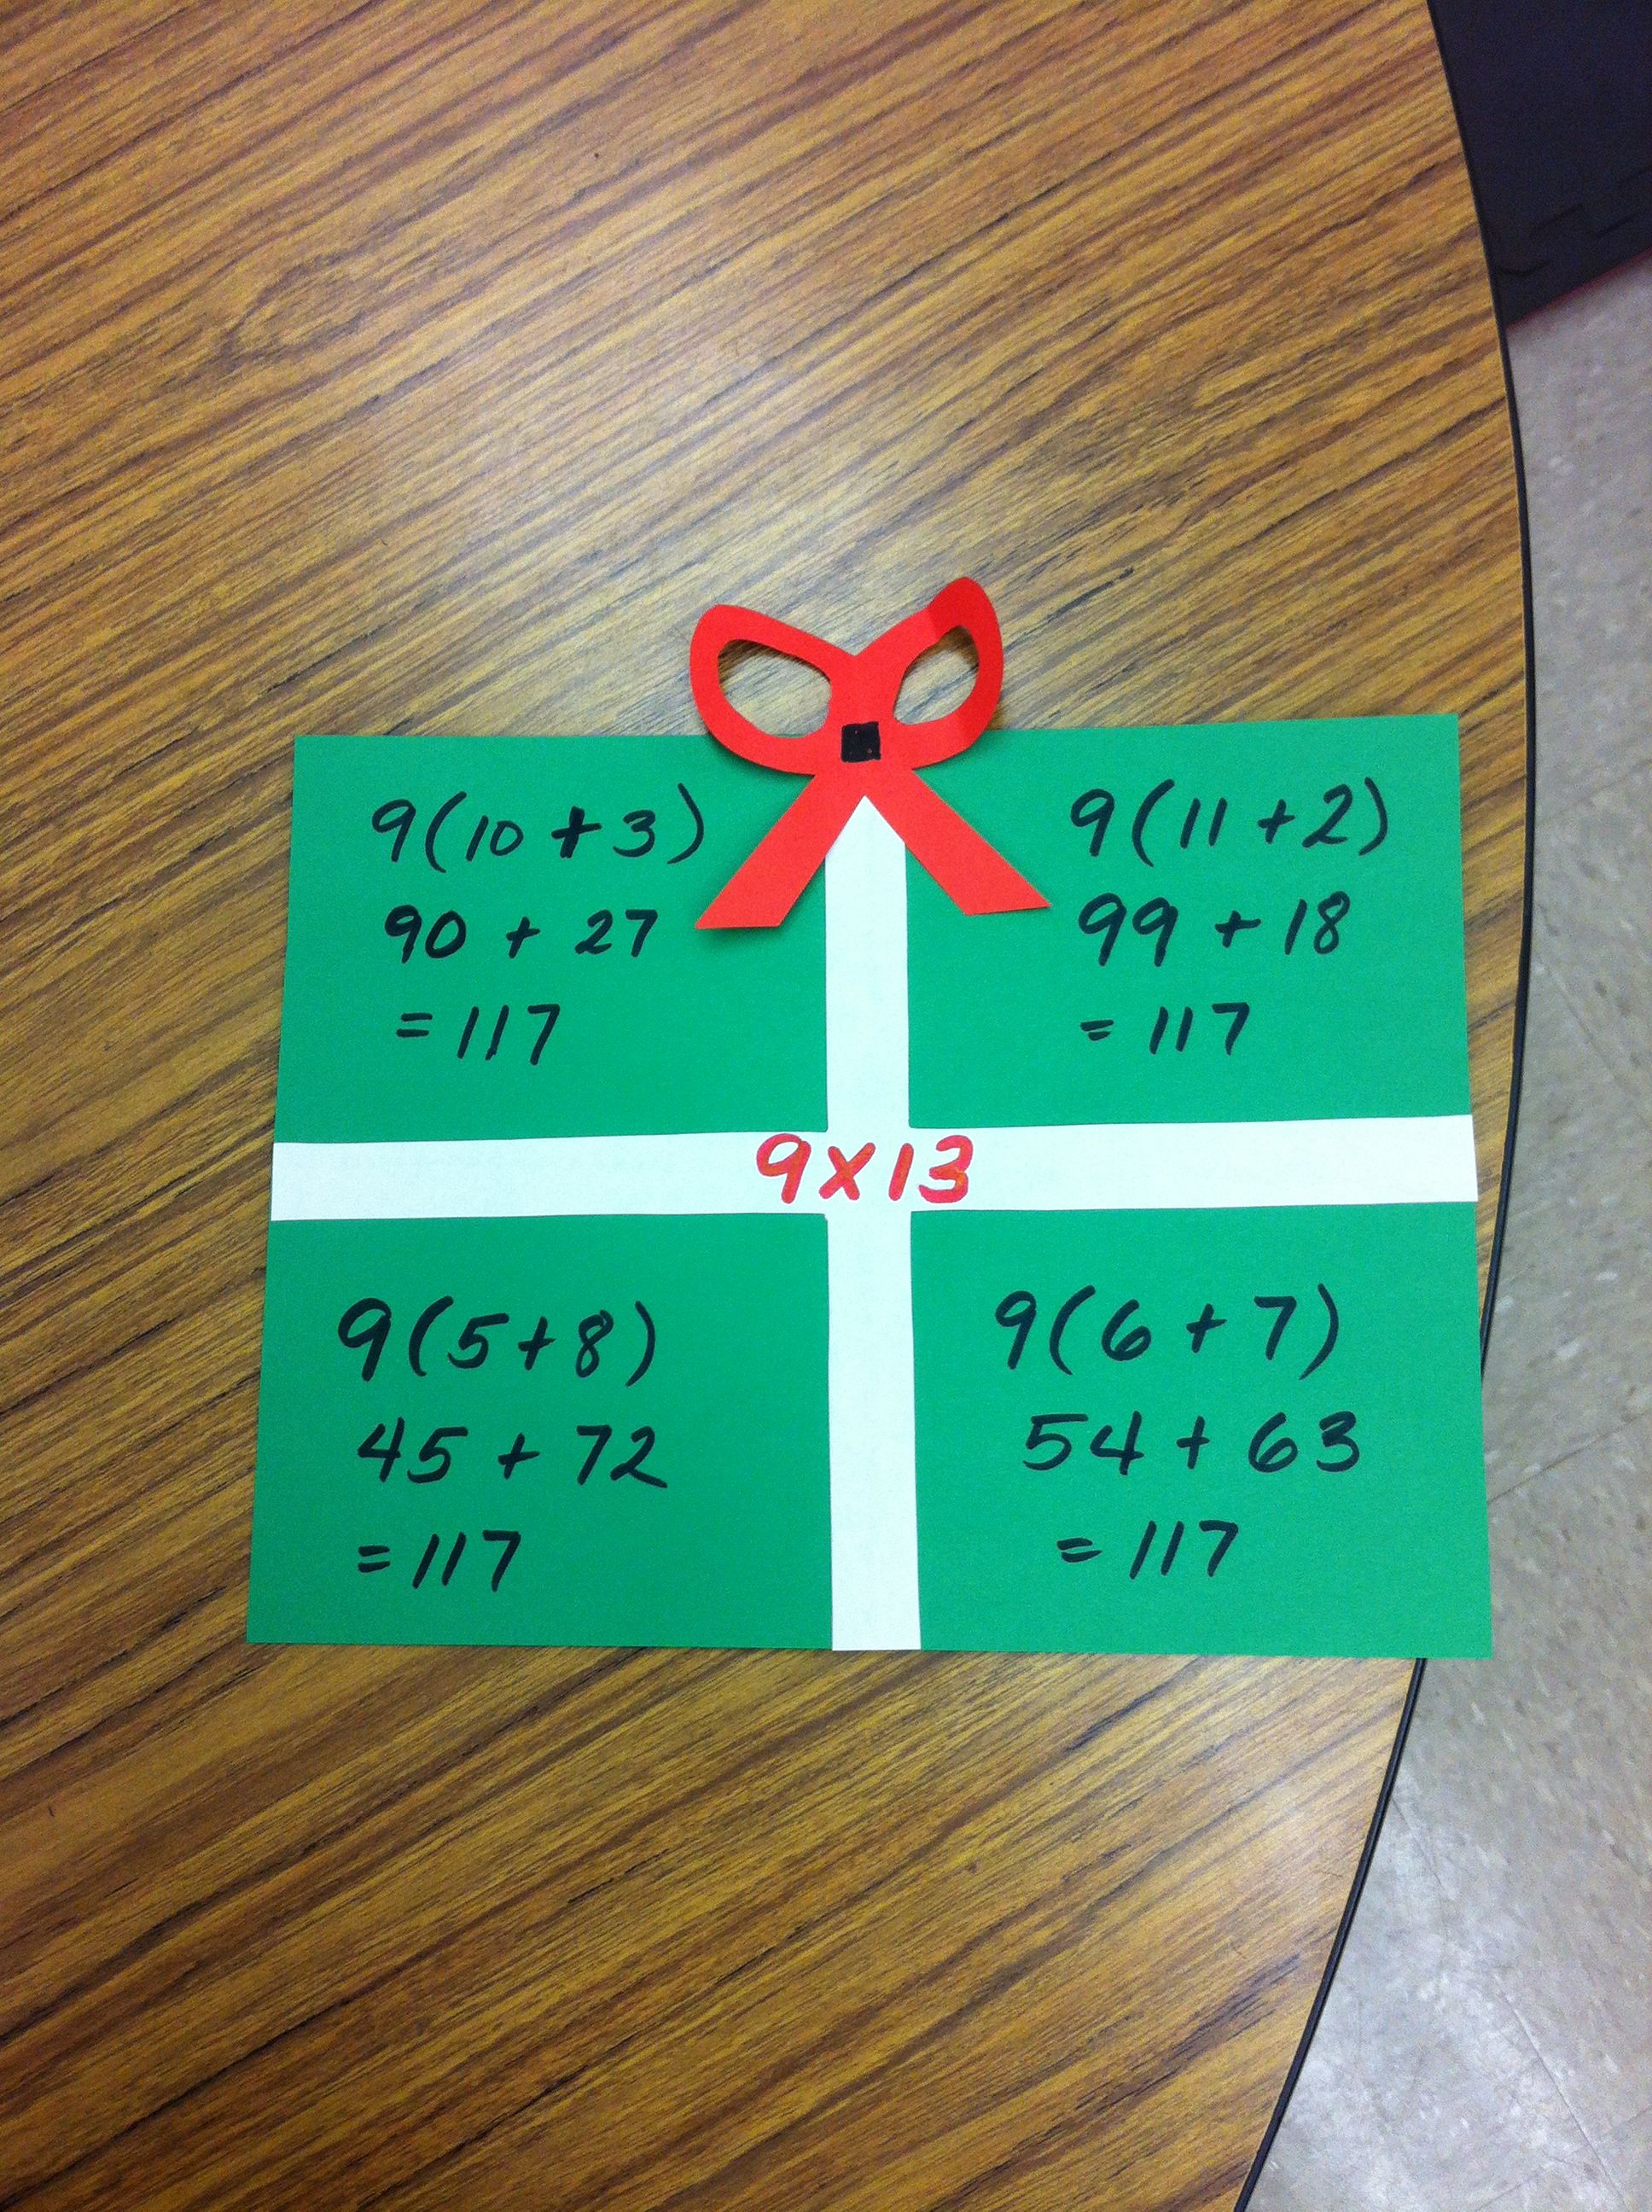 Distributive Property Creative Way To Teach It Image